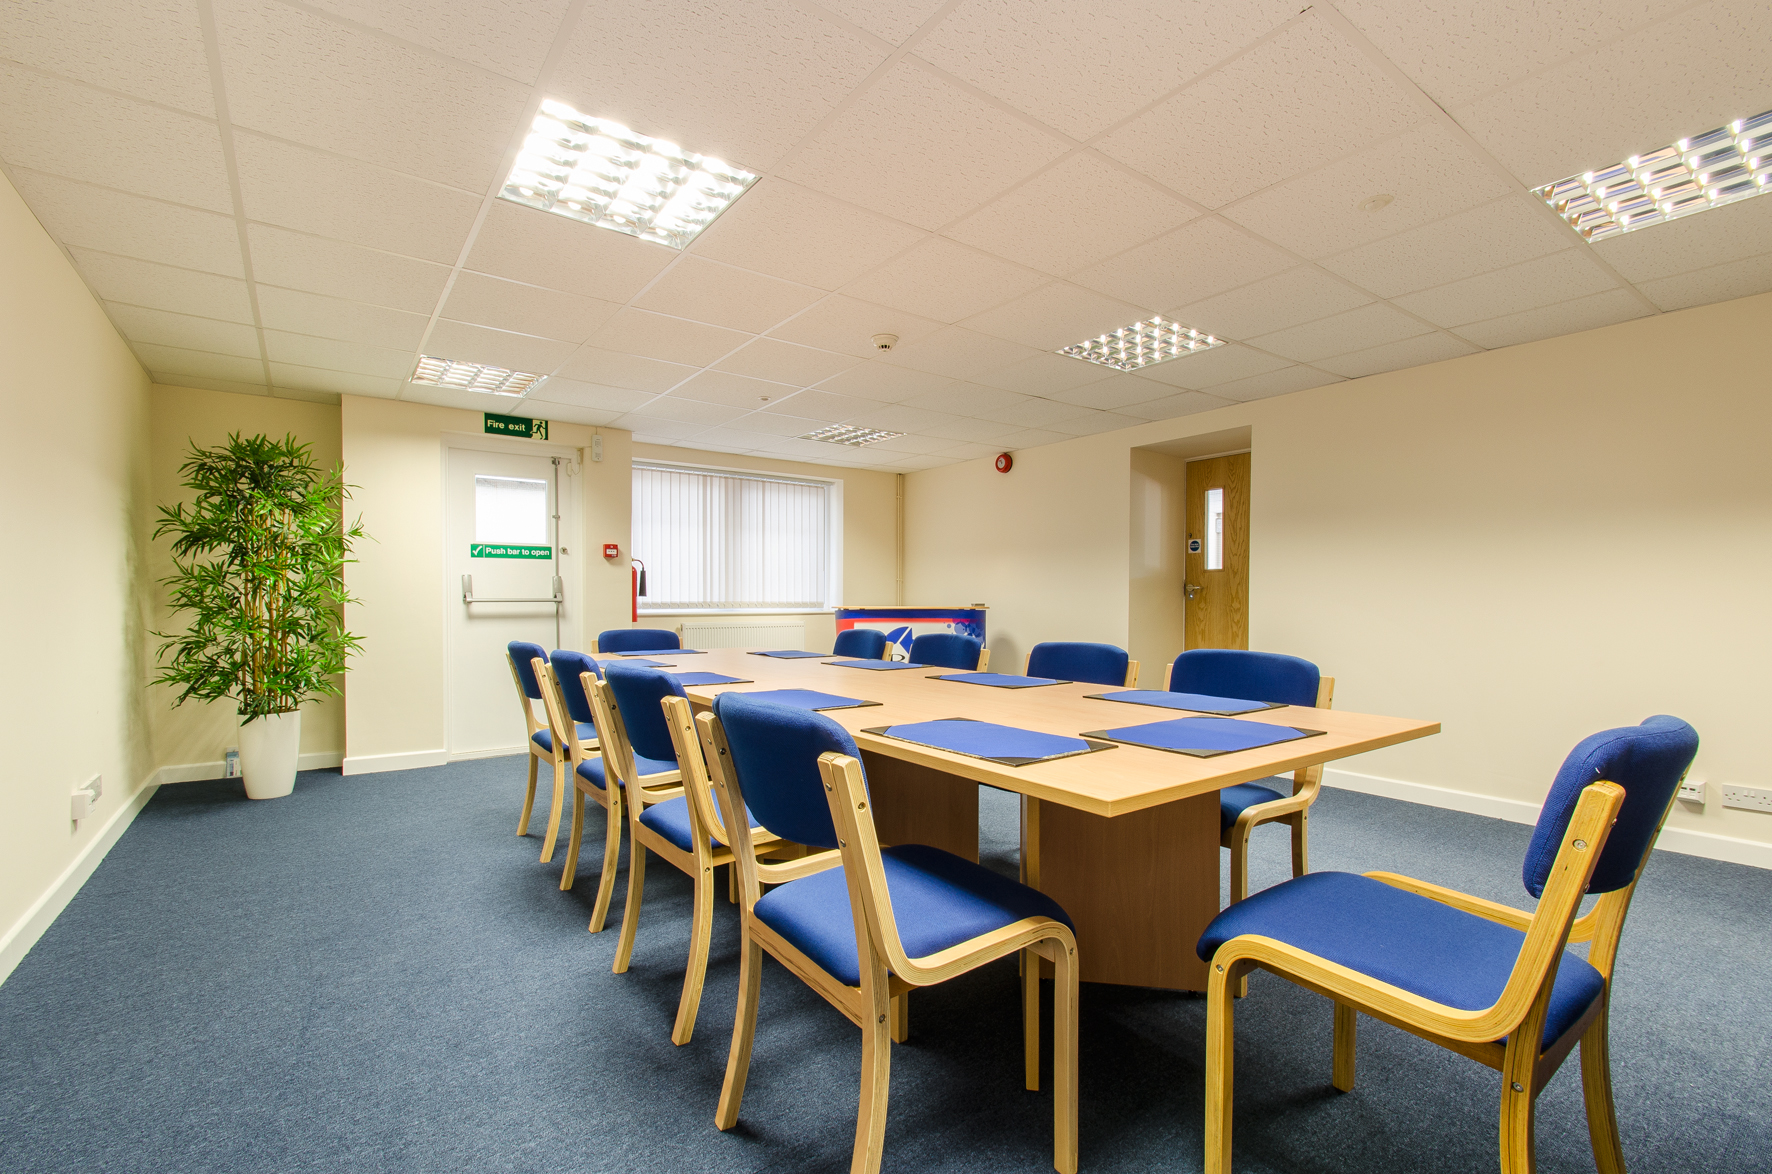 Nichola-Adshead-ground-floor-meeting-room-2